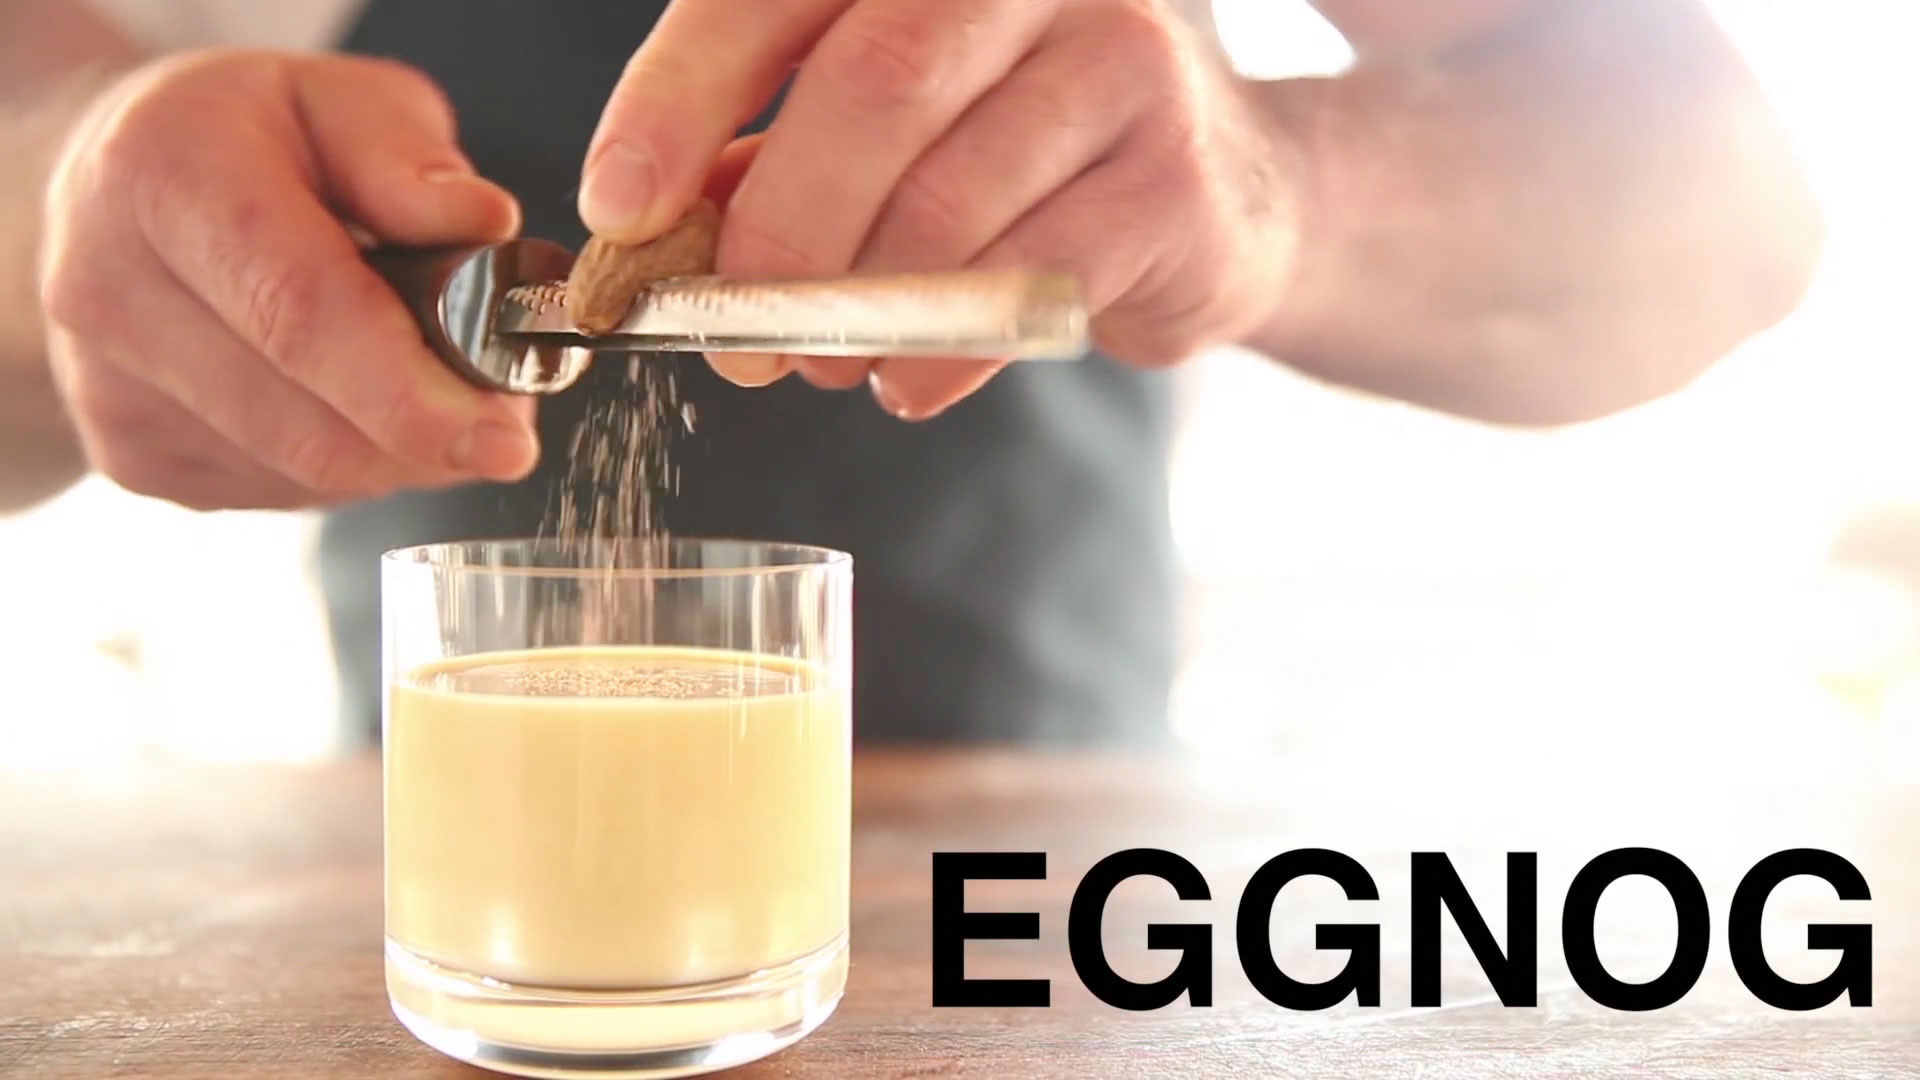 ChefSteps: High-Tech Egg Nog